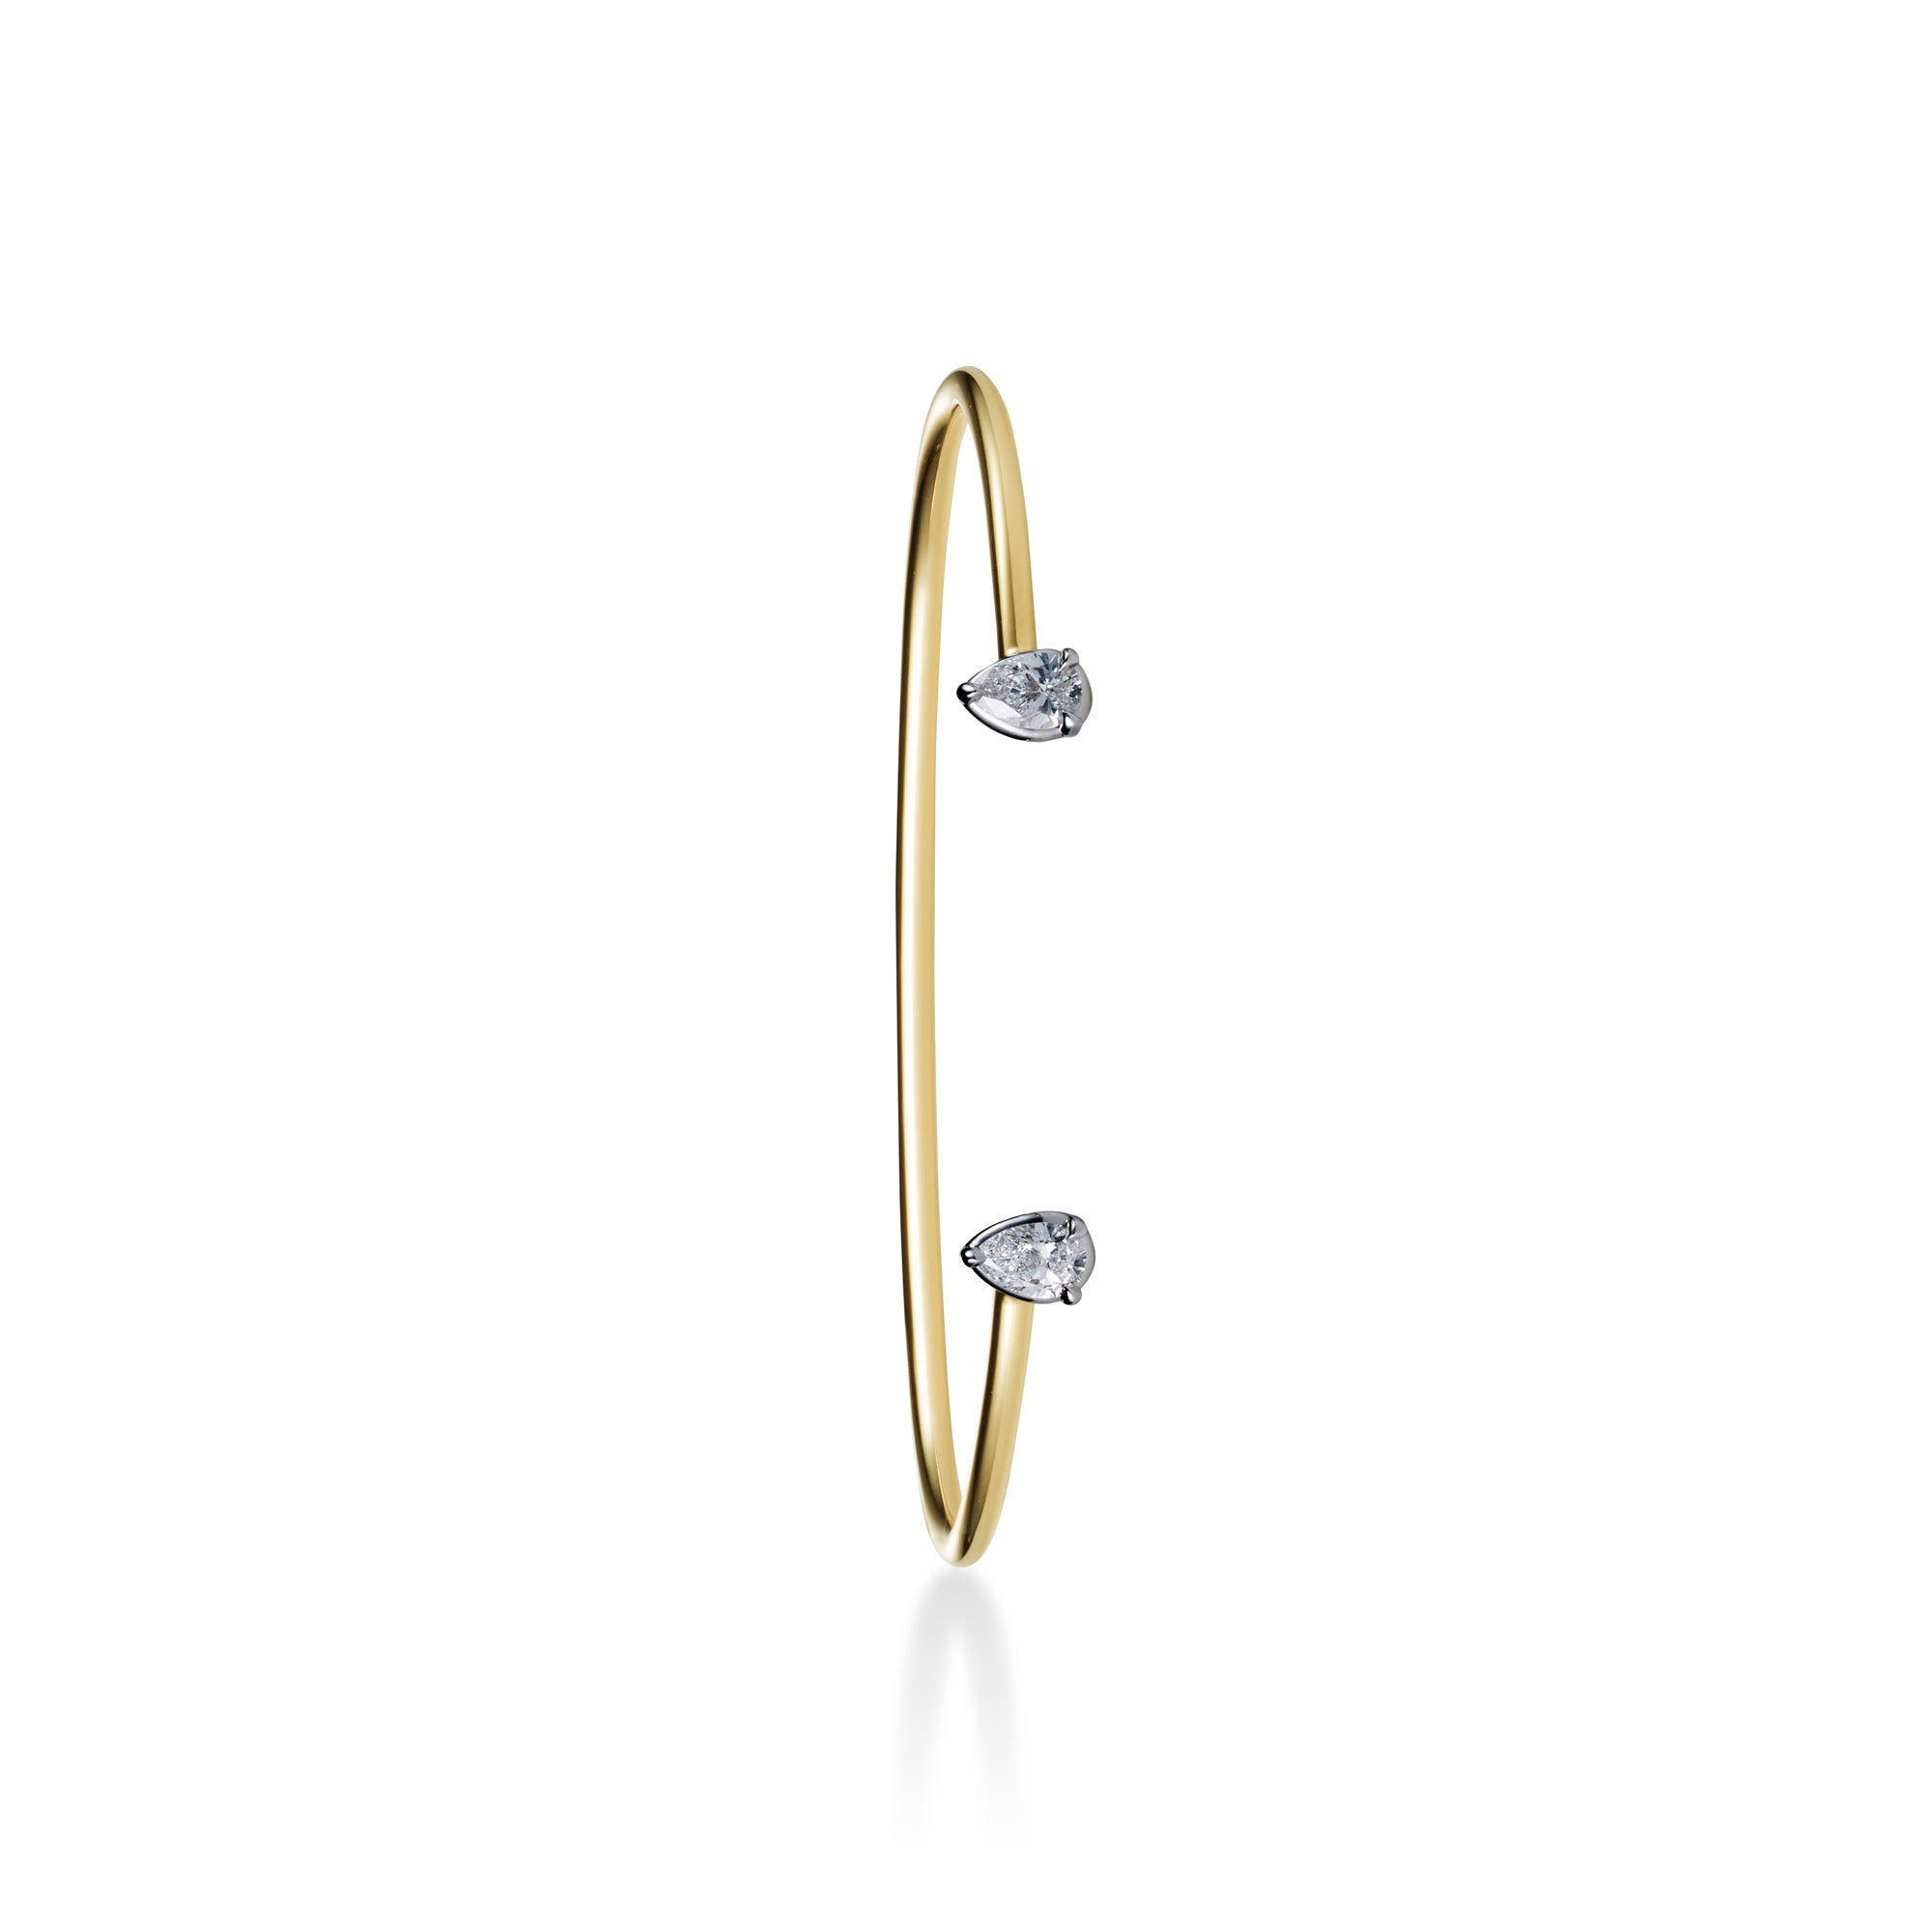 Floating Bangle with pear-shaped diamonds